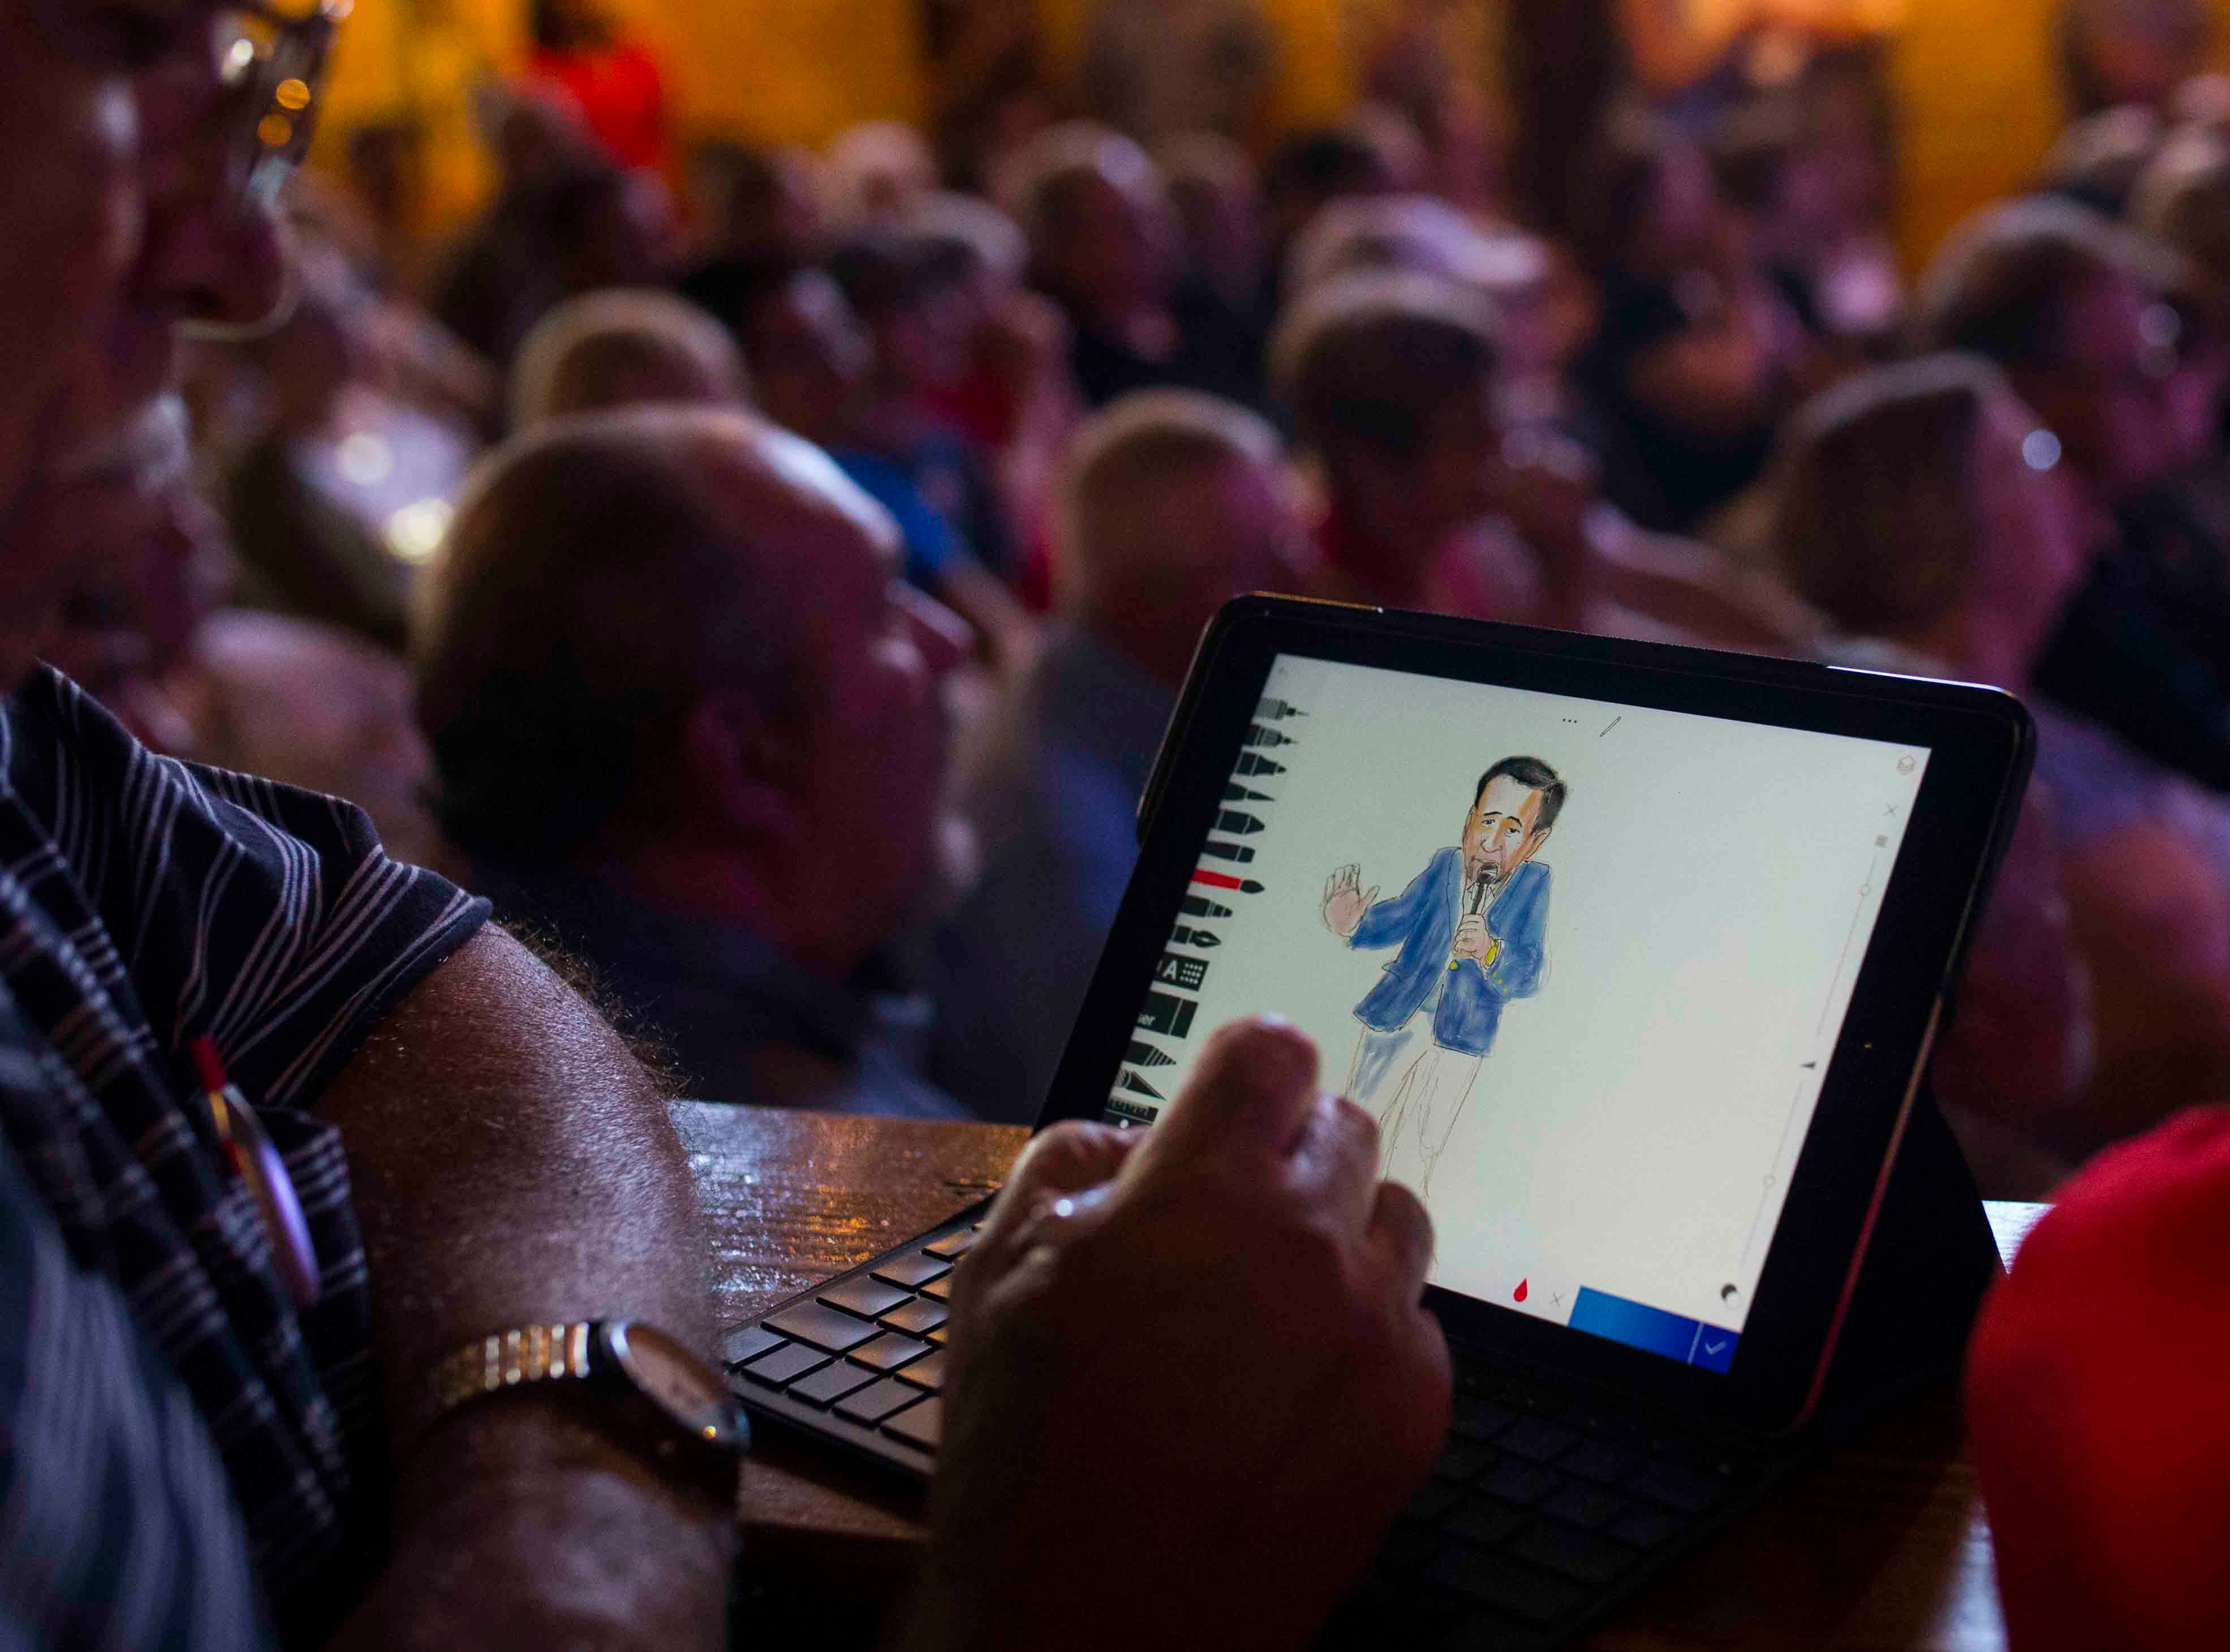 A man draws U.S. Sen. Ted Cruz as he speaks at a campaign event on Saturday, August 16, 2018, at House of Rock in Corpus Christi.